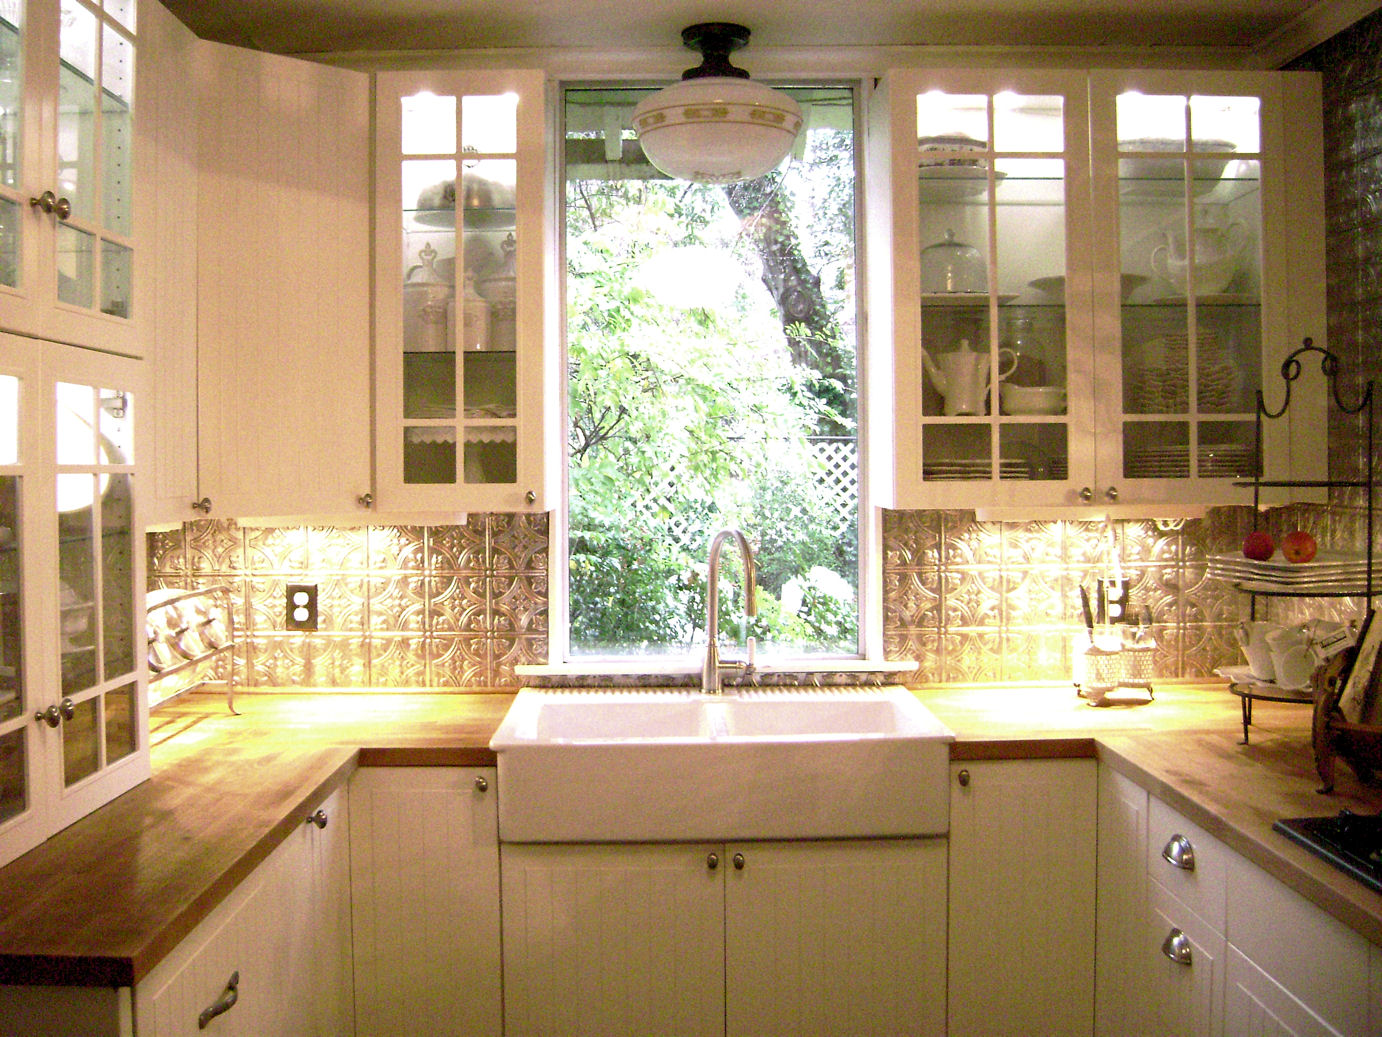 Old Kitchen Renovation Laurieannas Vintage Home Small Kitchen Big Surprises